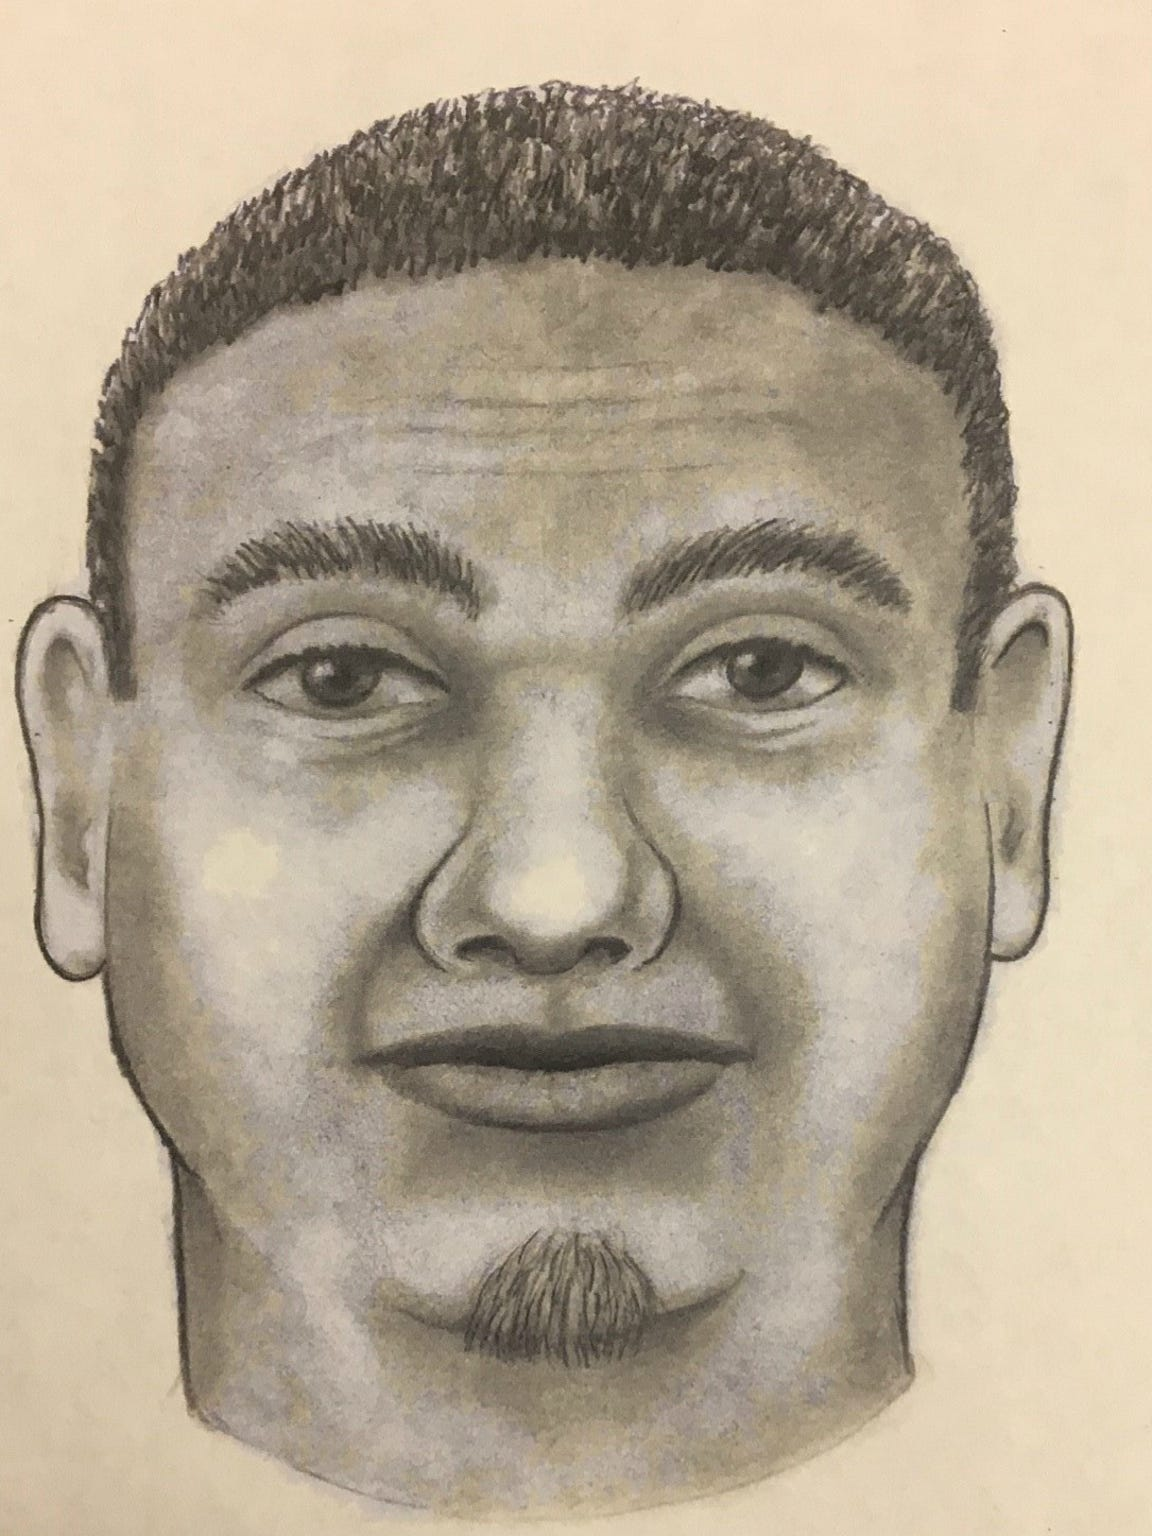 Yuma police circulated this sketch of a the man suspected